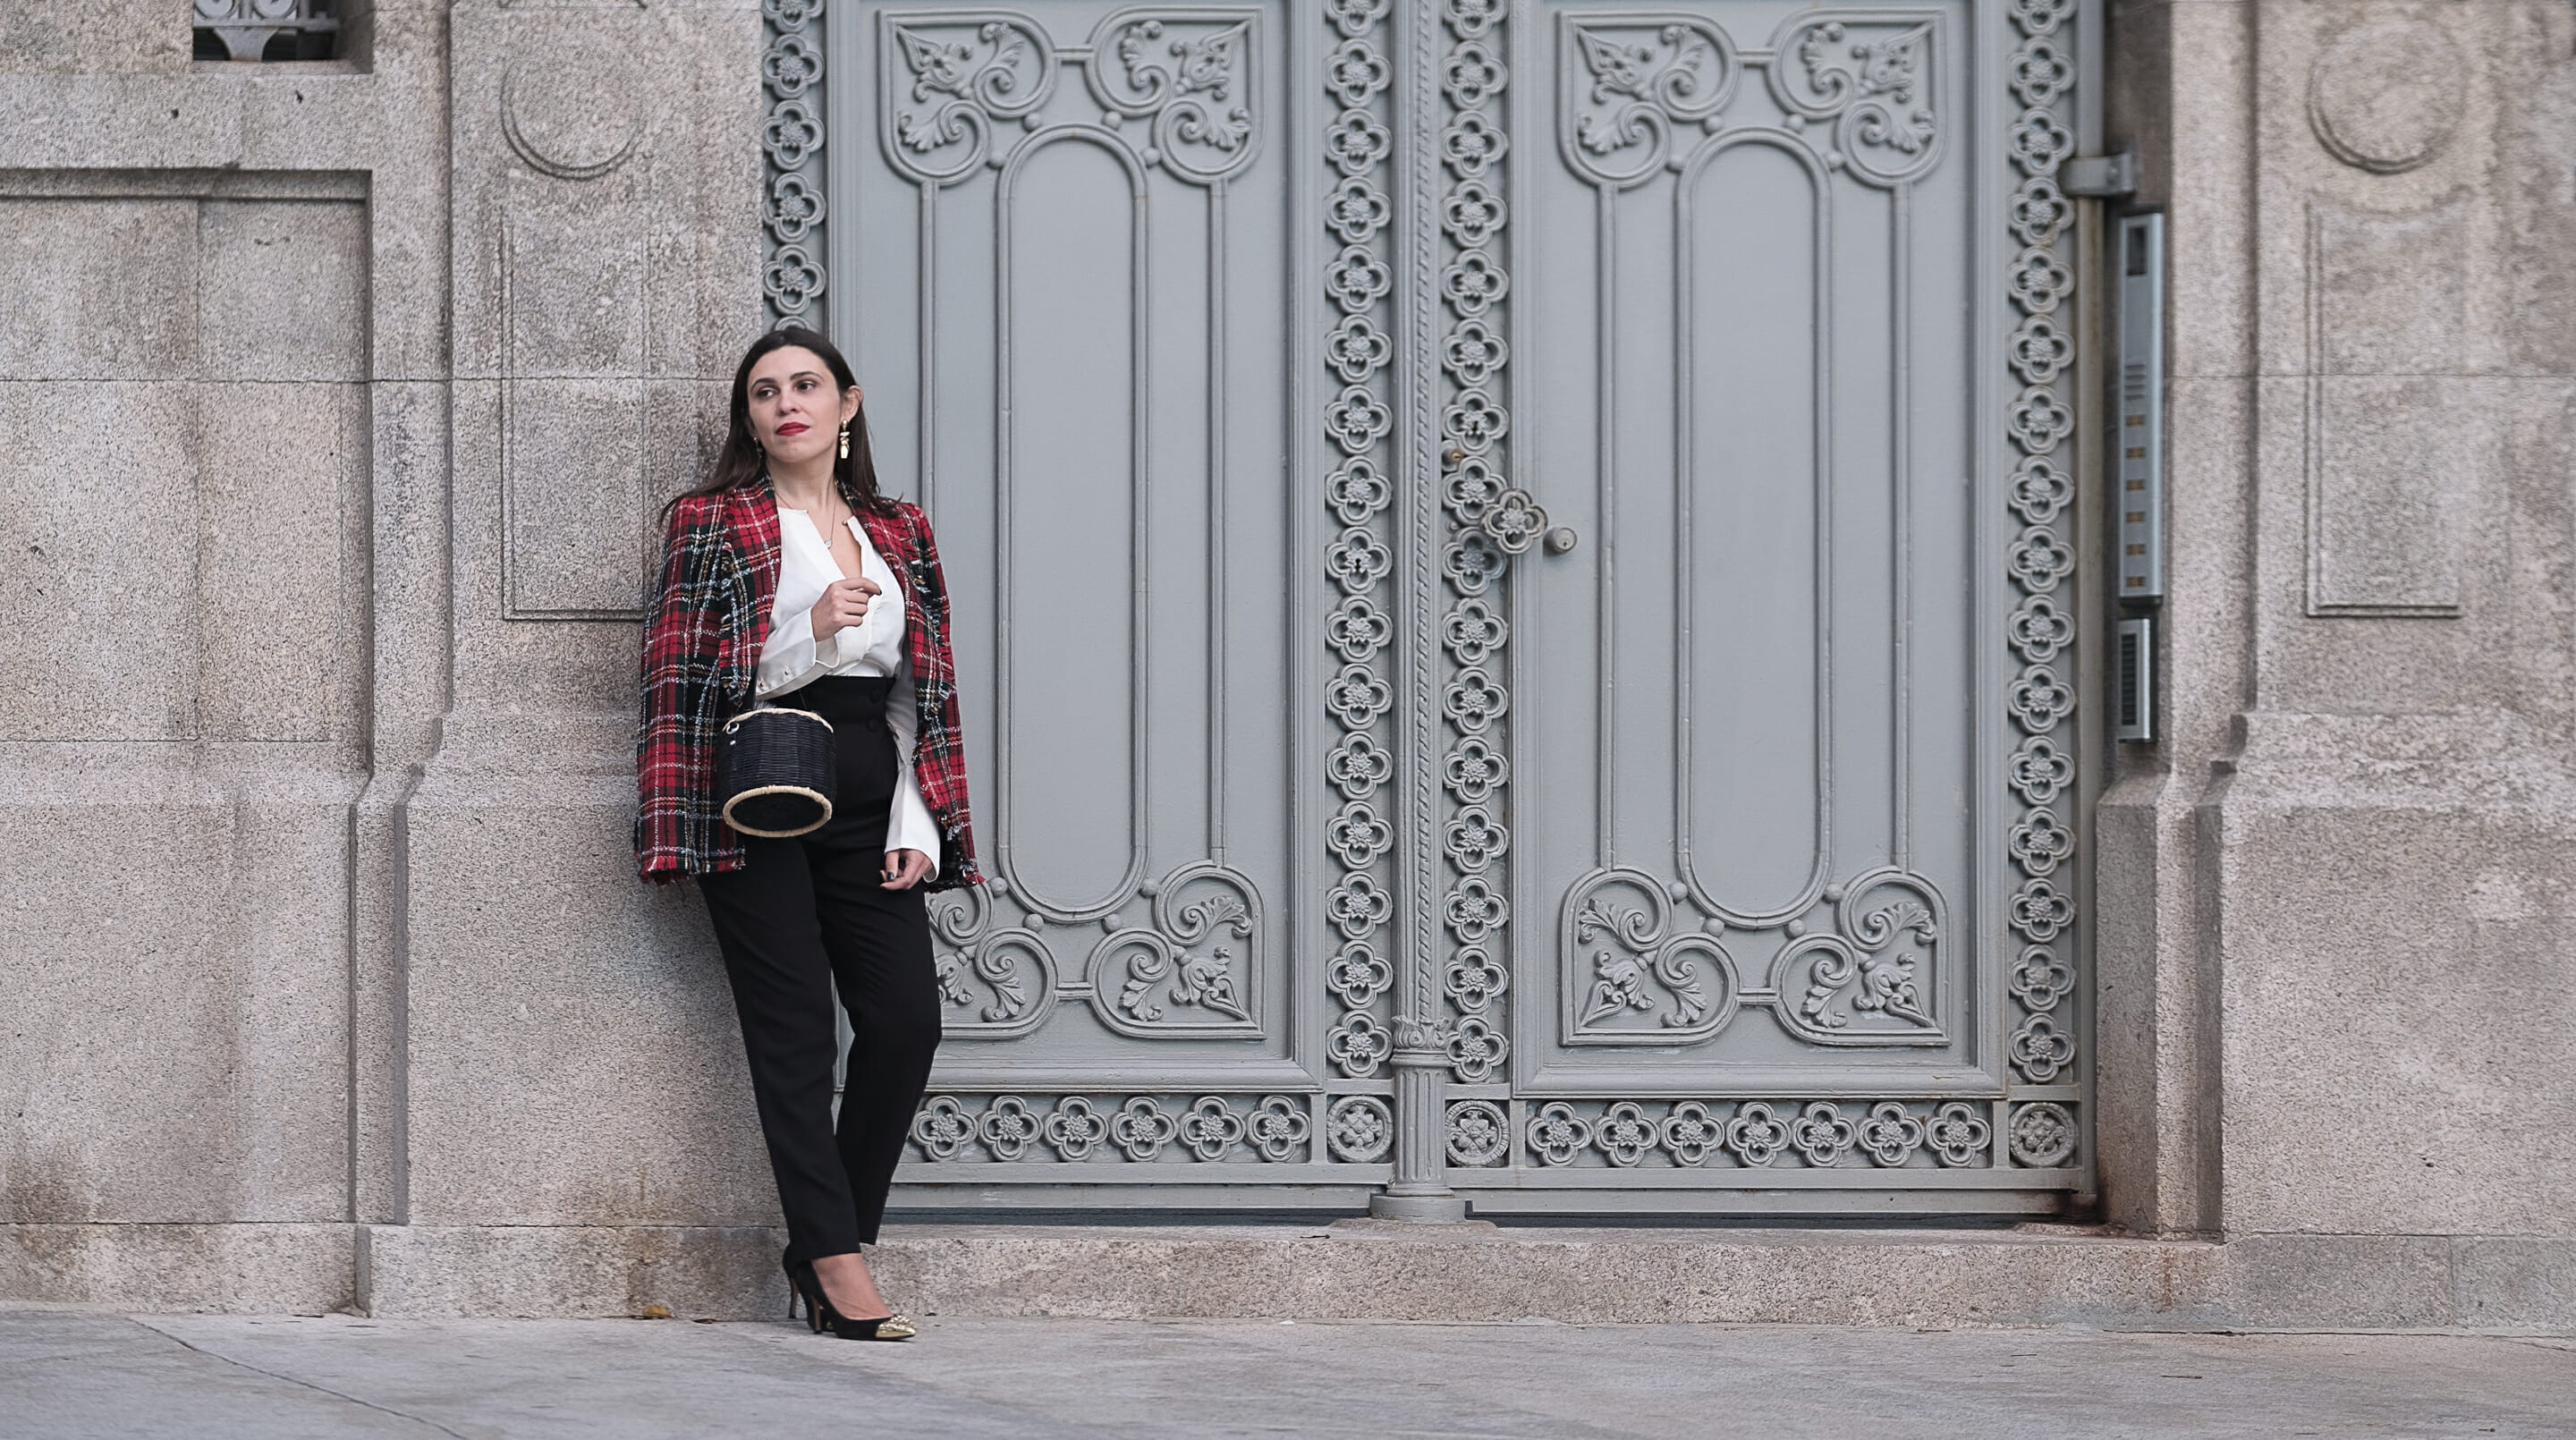 Le Fashionaire tartan red zara blazer wool black chic front buttons trousers uterque silk white zara shirt black straw faux fur zara bag 0974F EN tartan red zara blazer wool black chic front buttons trousers uterque silk white zara shirt black straw faux fur zara bag 0974F EN